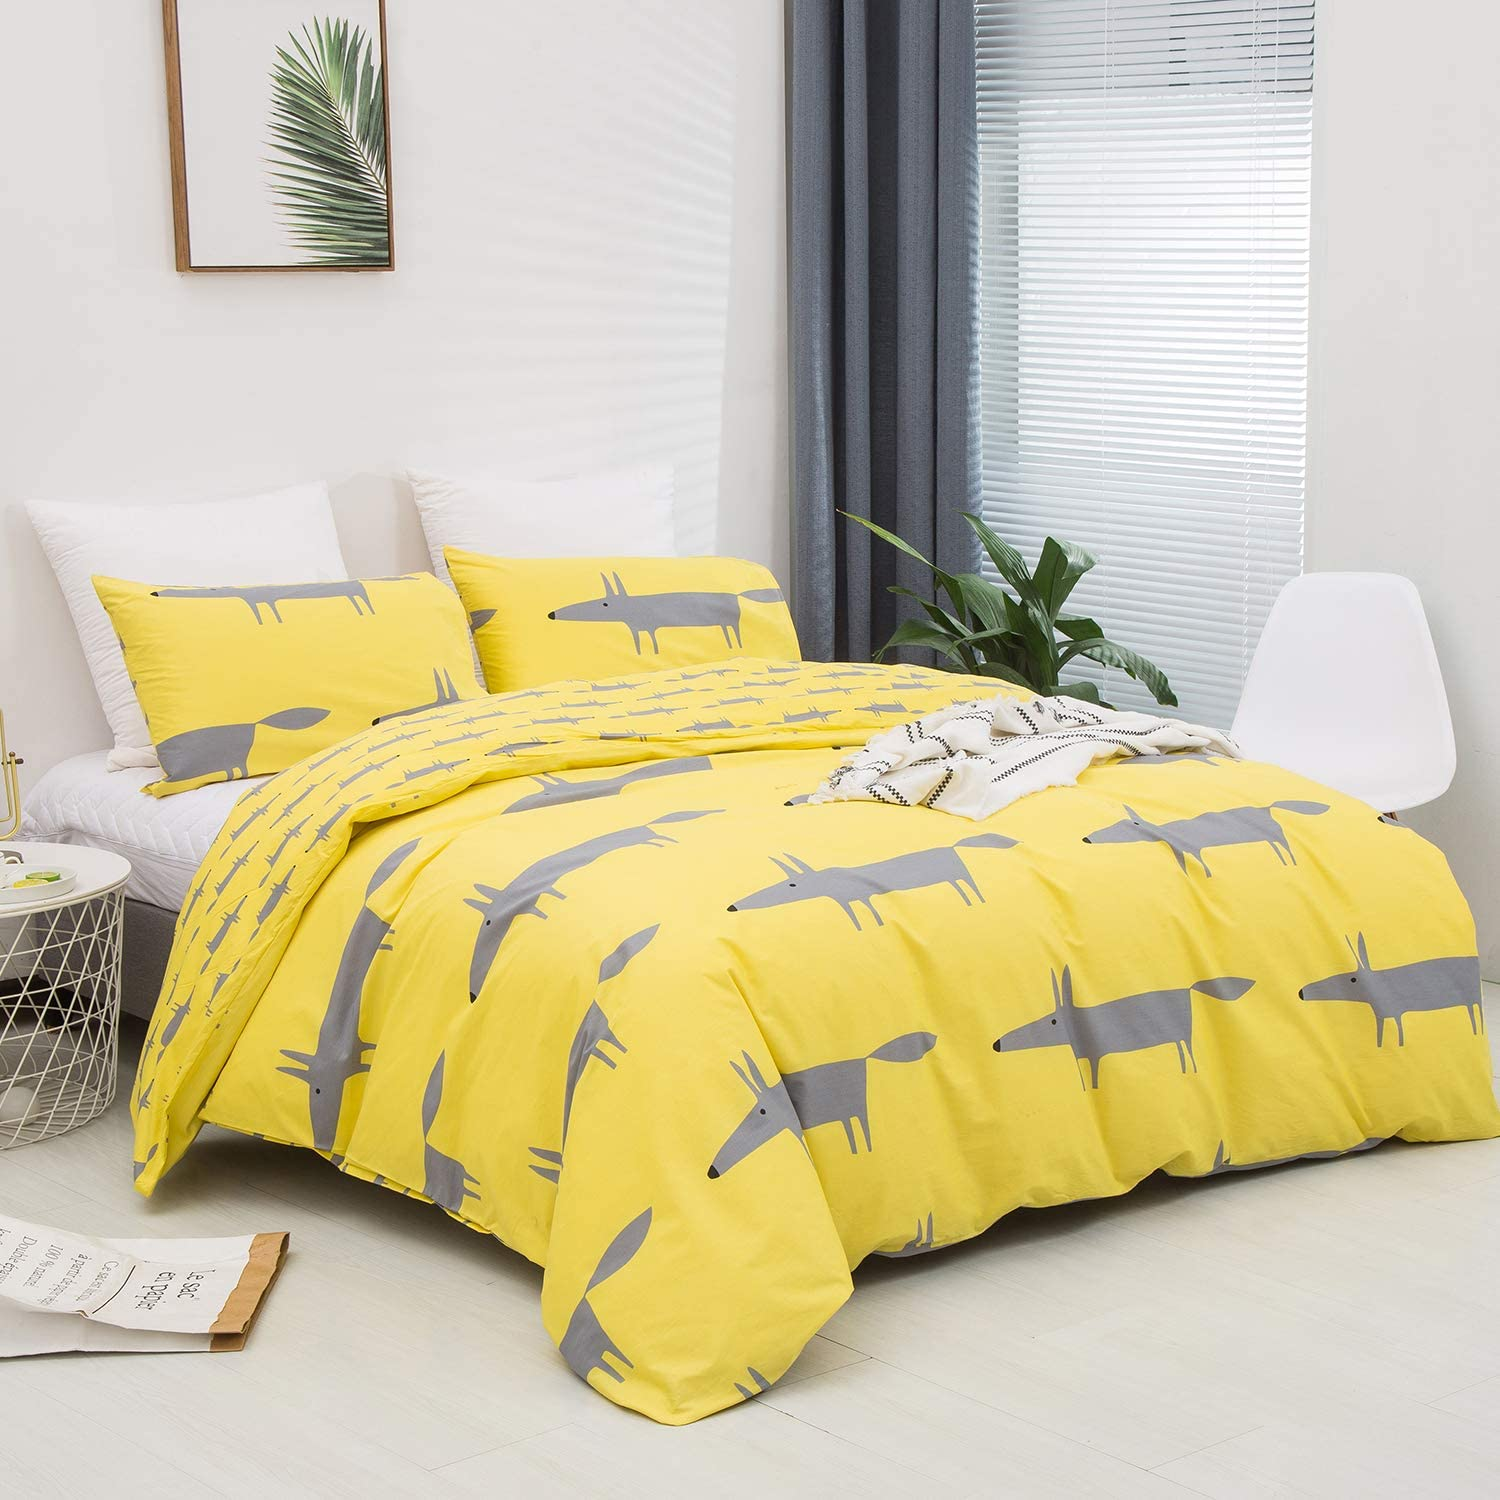 CLOTHKNOW Yellow Fox Duvet Cover Sets Queen Cotton Boys Girls Bedding Sets Full Grey Animal Cartoon Duvet Cover Kids Teen Bed 3Pcs Bedding Comforter Cover Set with Zipper Closure